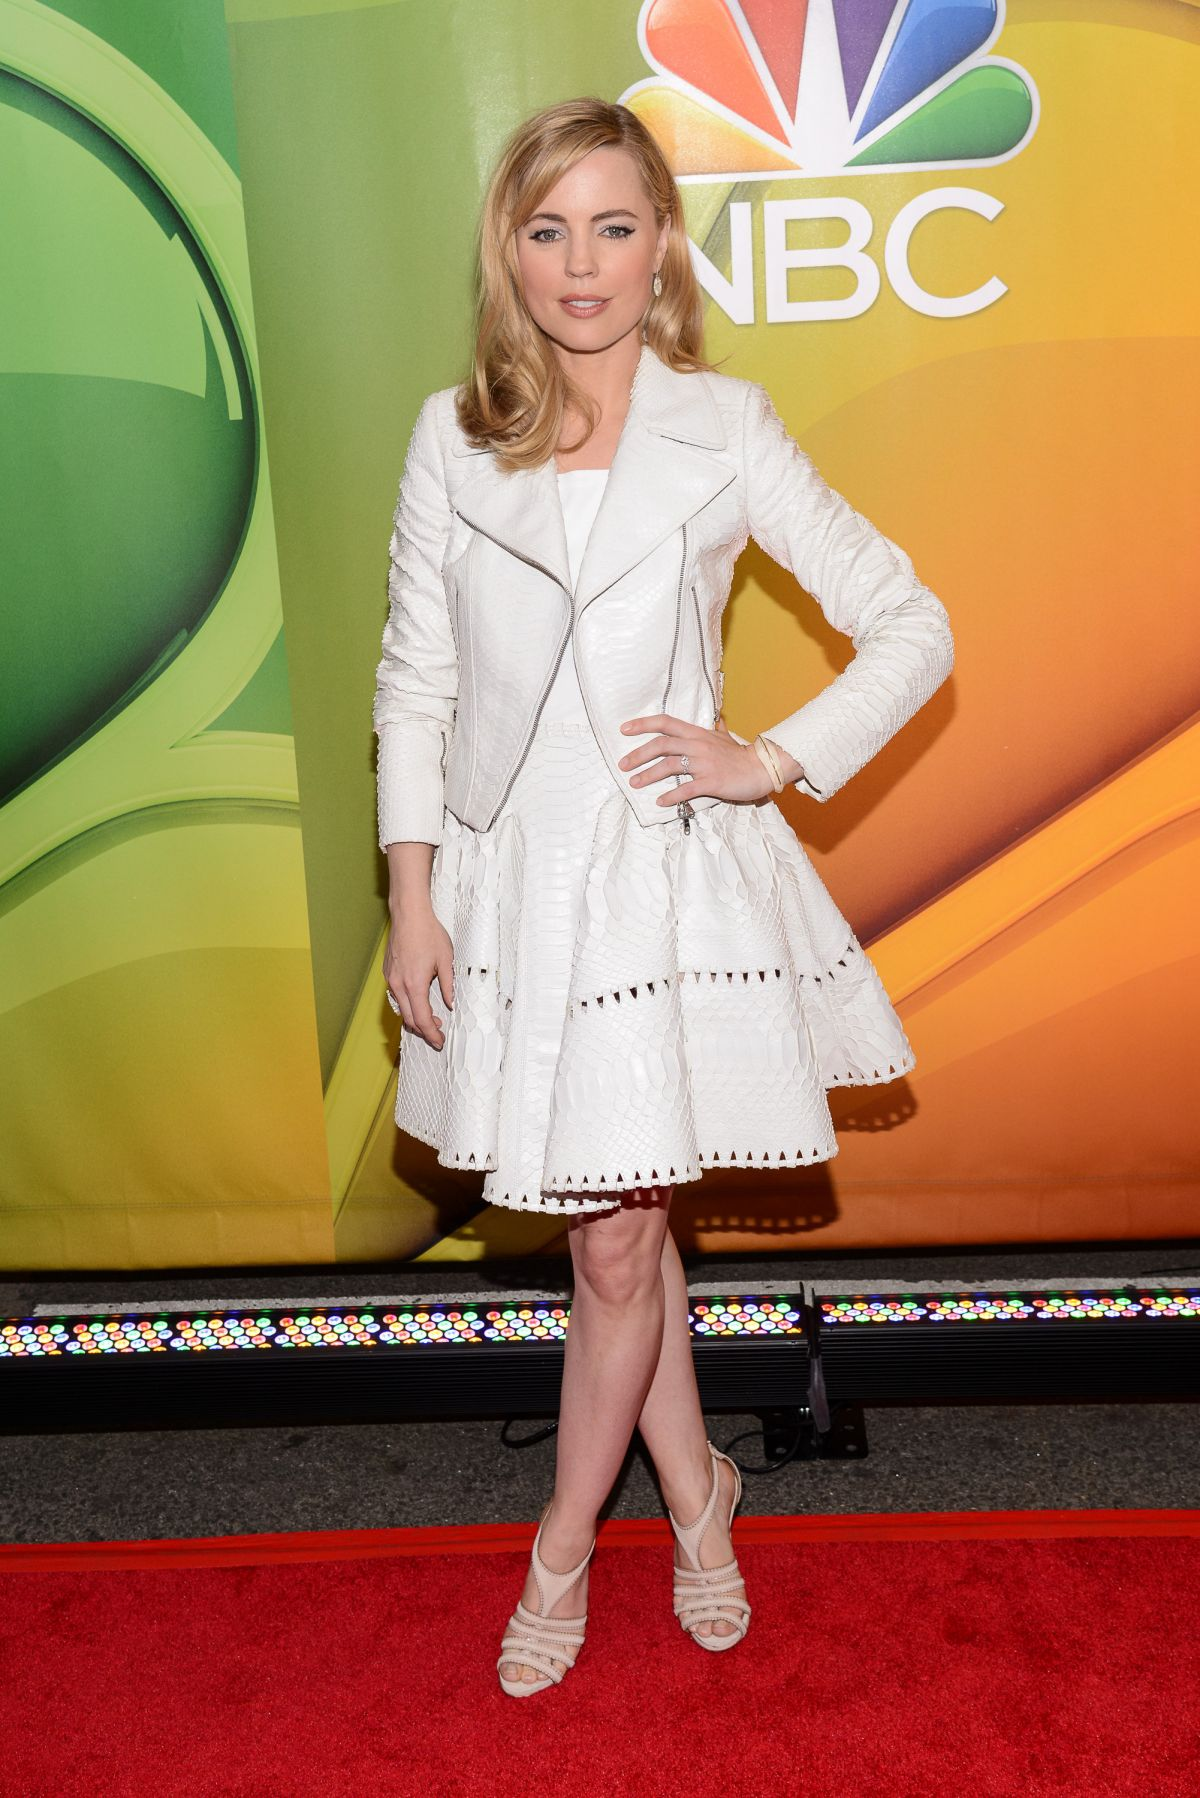 melissa-geirge-at-2015-nbc-upfront-presentation-in-new-york-05-011-2015_1.jpg